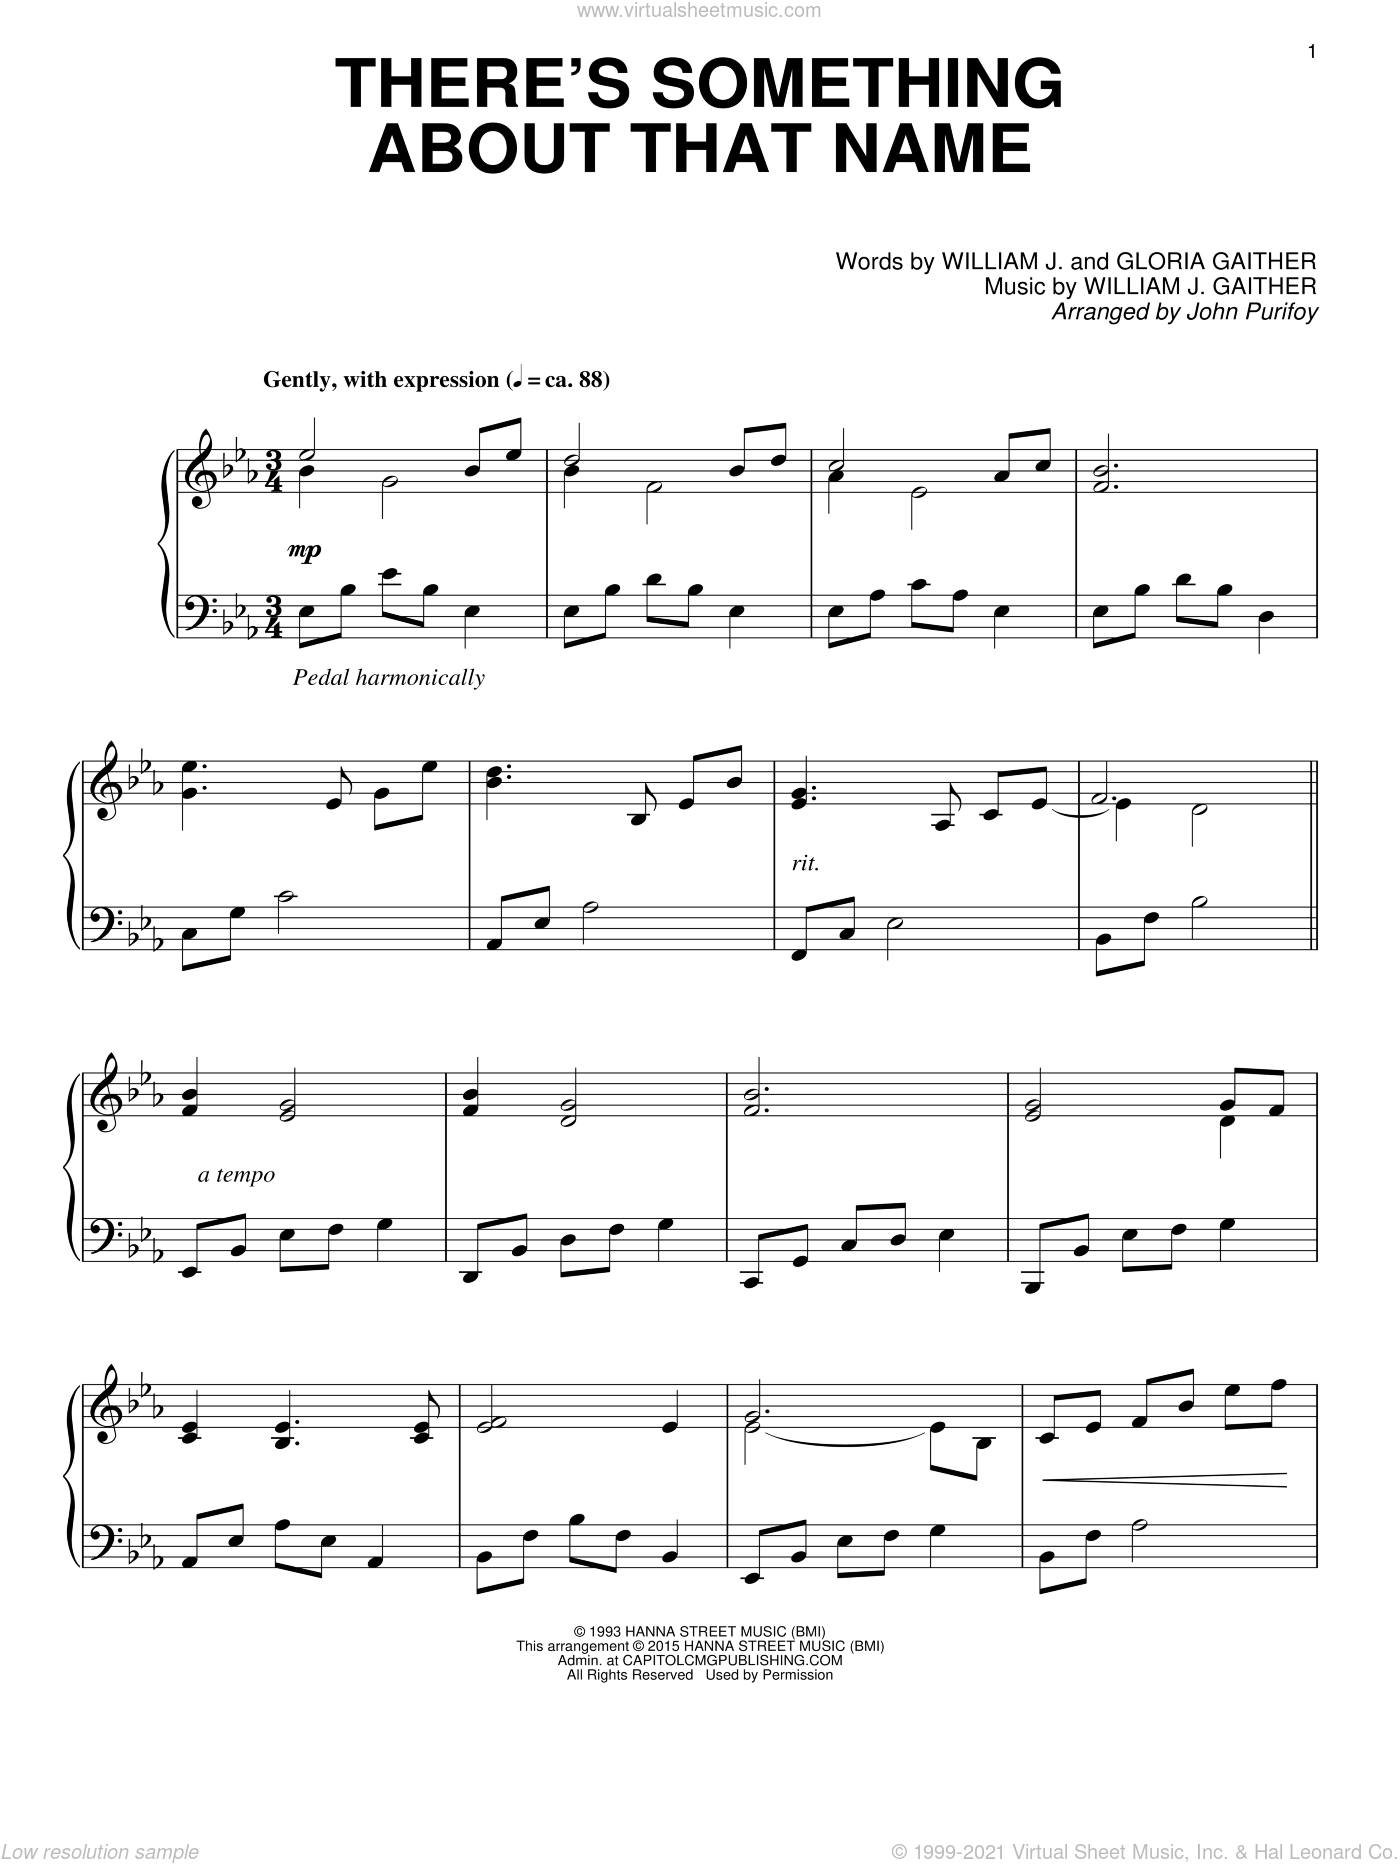 There's Something About That Name sheet music for piano solo by Gloria Gaither, John Purifoy and William J. Gaither, intermediate. Score Image Preview.